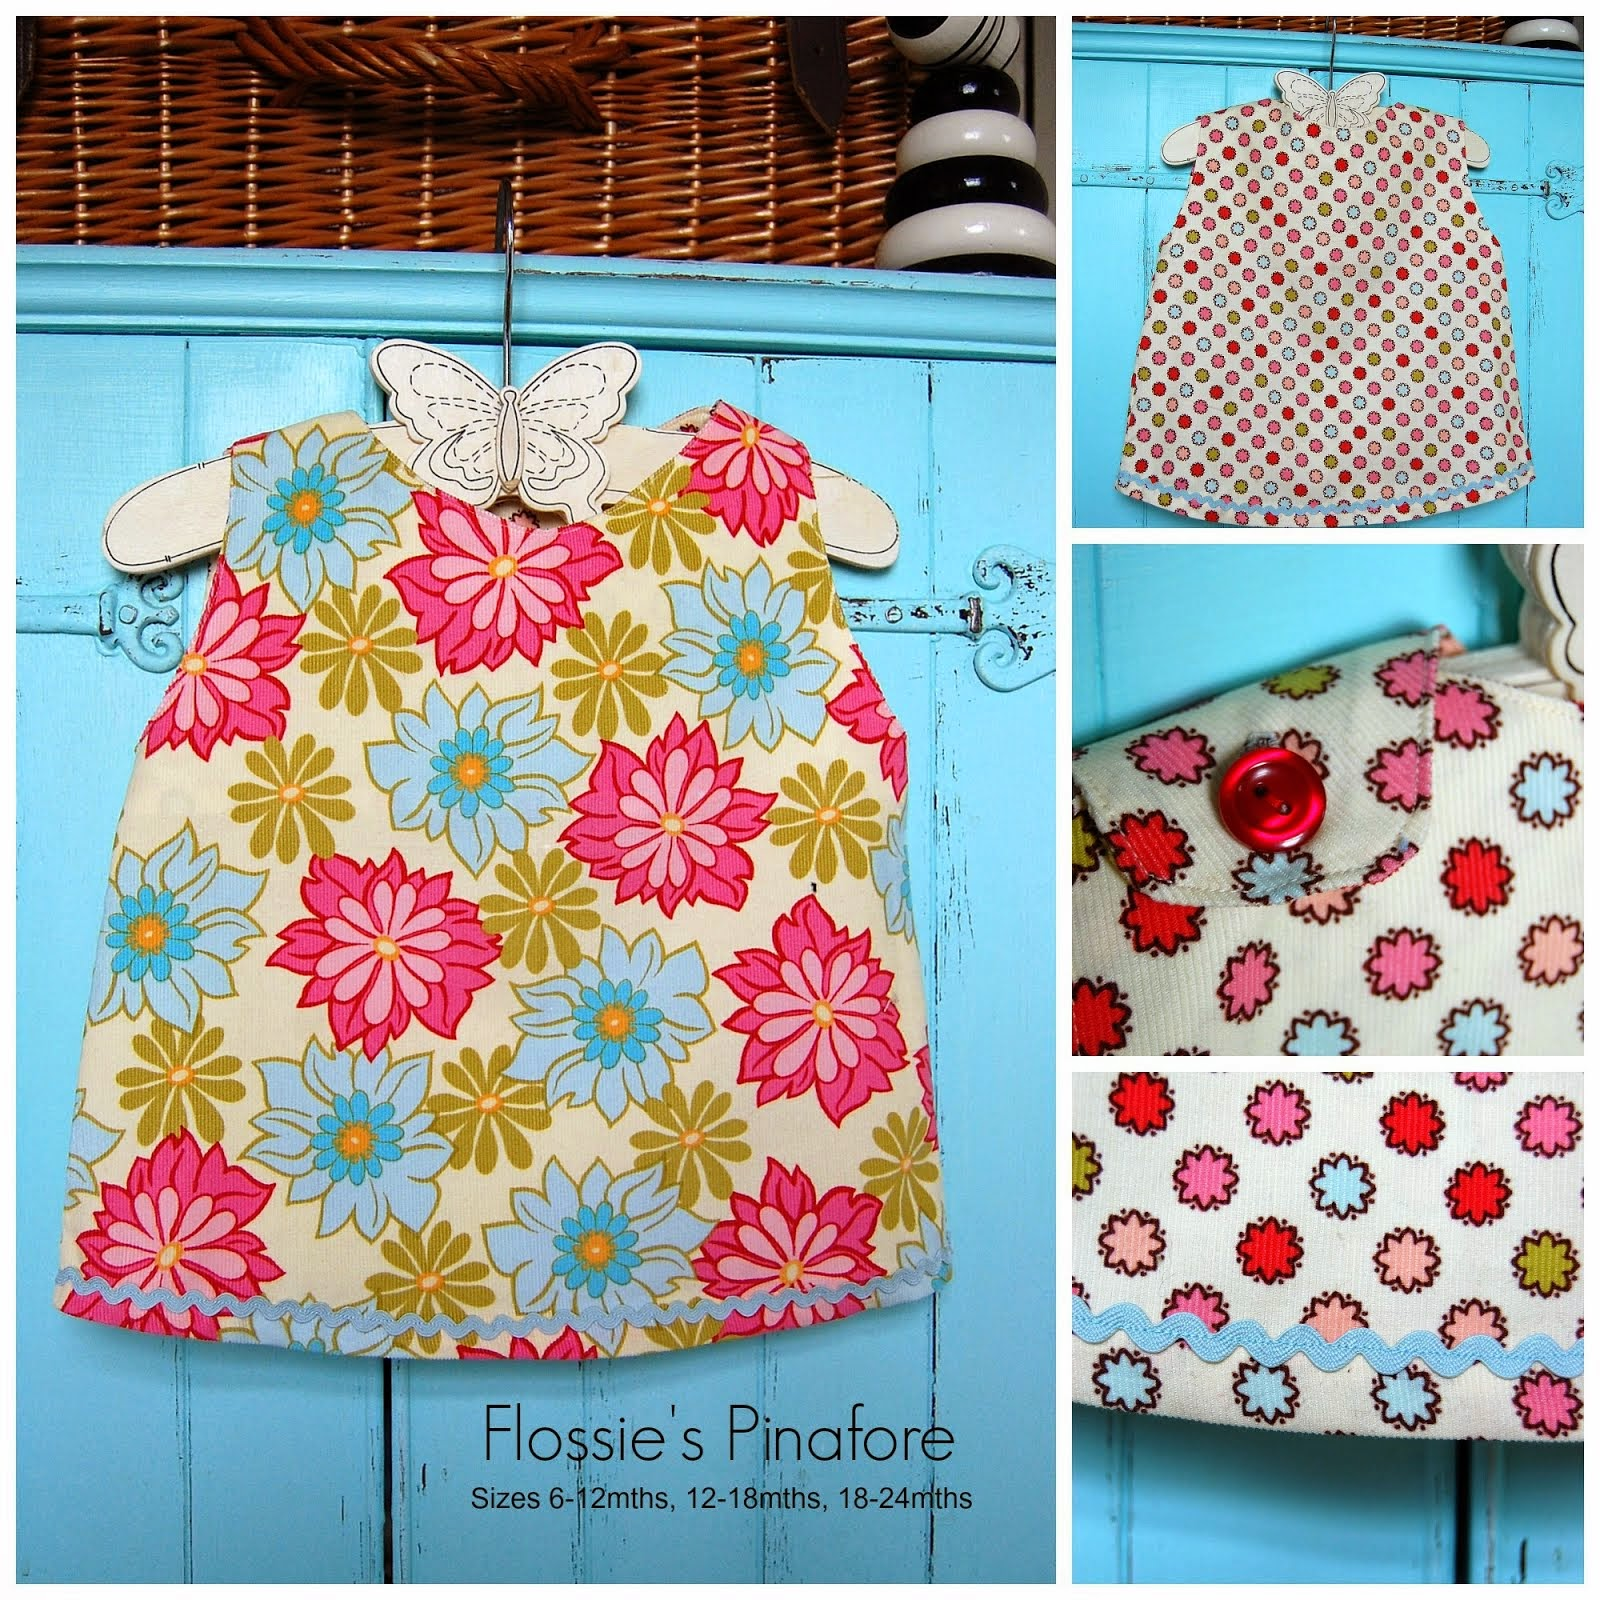 Flossie's Pinafore Pattern